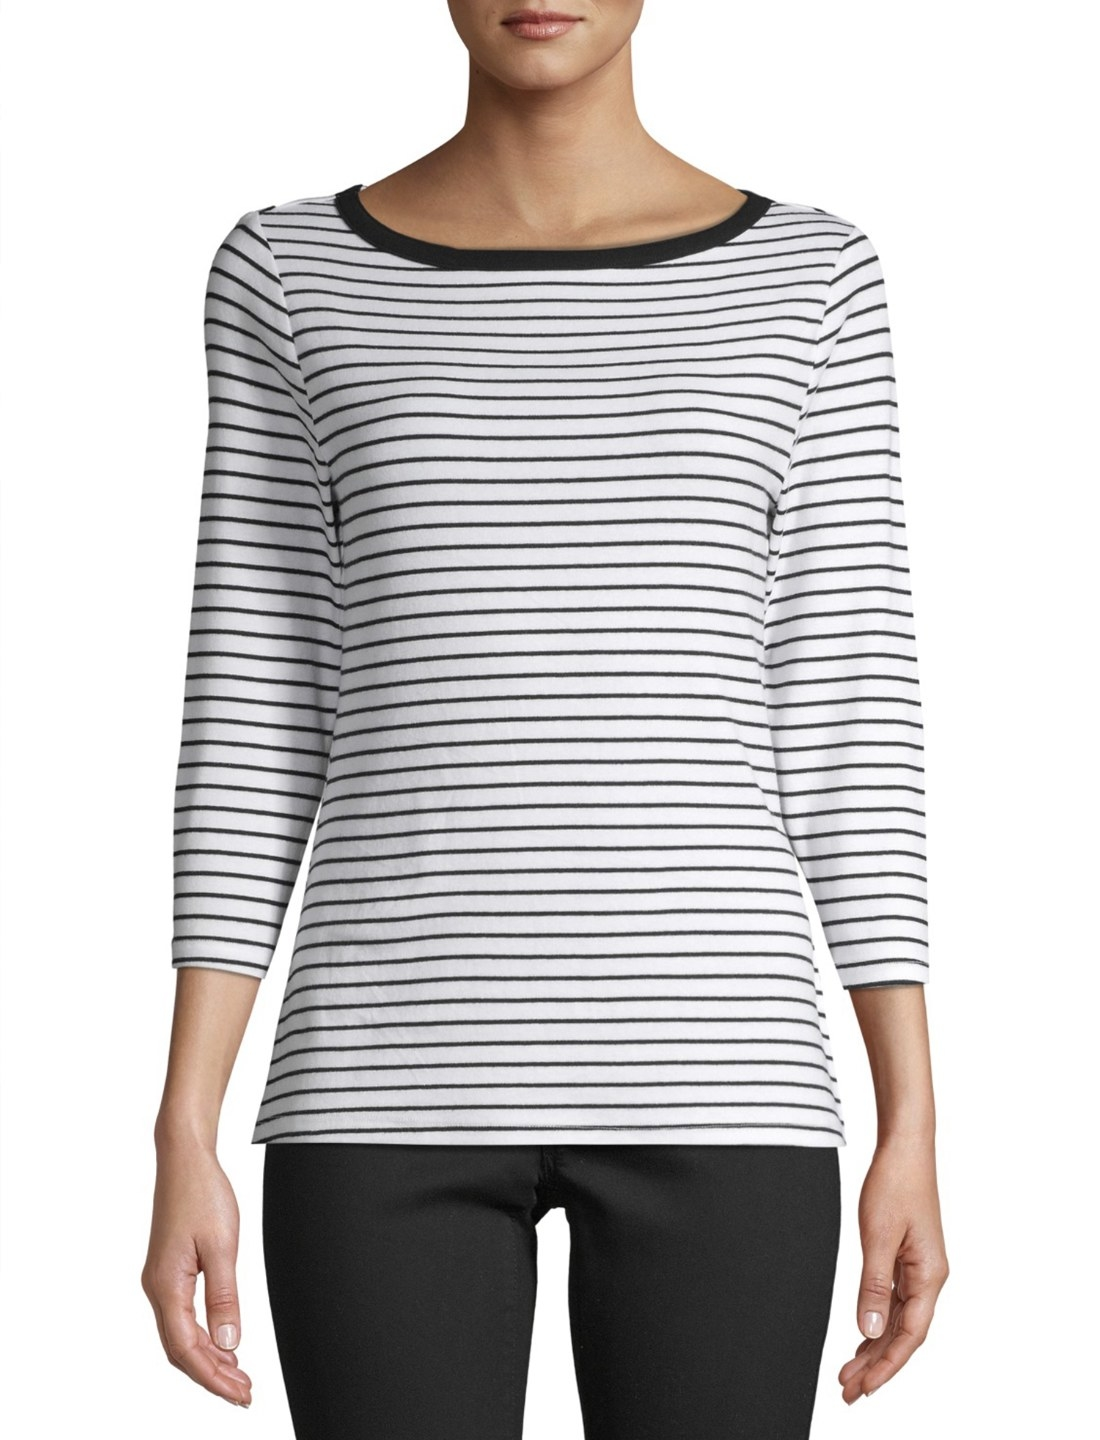 Model in the black and white striped quarter-sleeve shirt